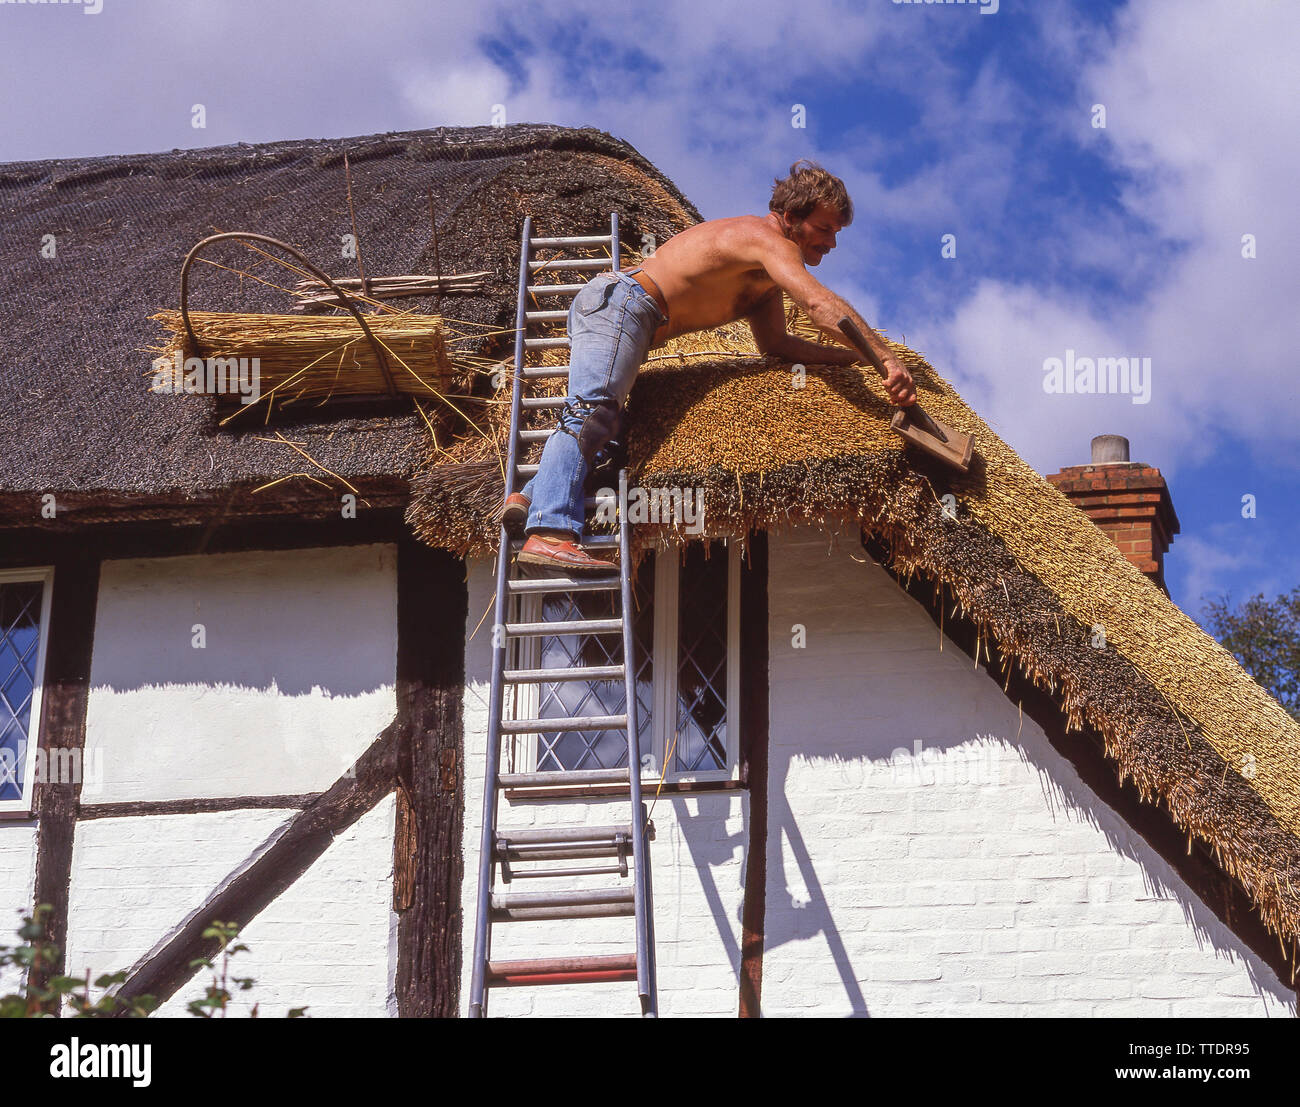 Thatch worker repairing thatched roof on period cottage, Hartley Wintney, Hampshire, England, United Kingdom - Stock Image